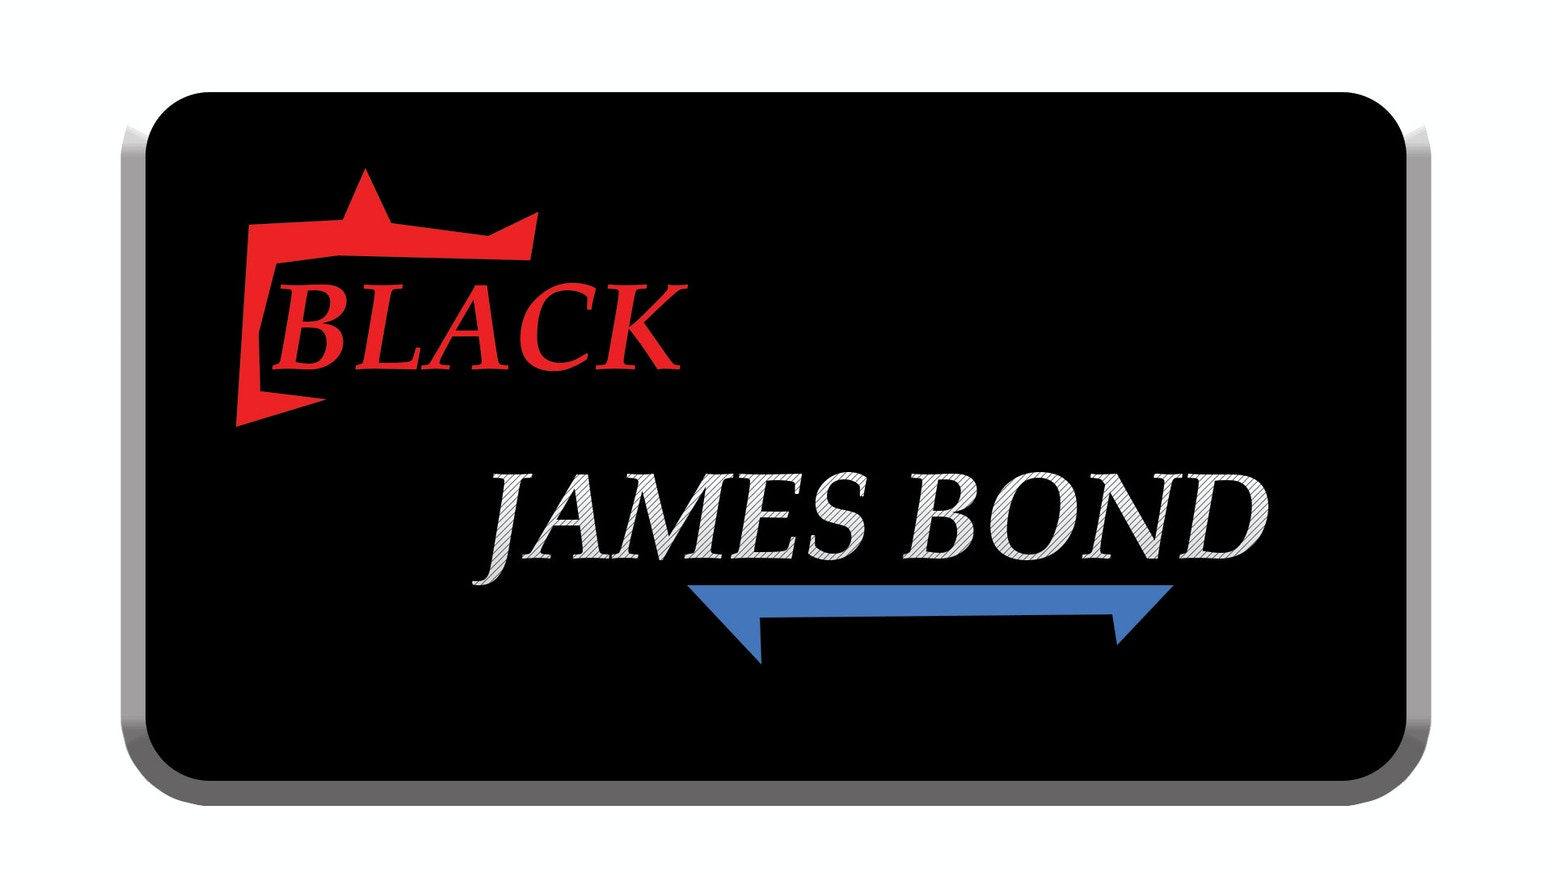 the black james bond by john a jenkins iv kickstarter. Black Bedroom Furniture Sets. Home Design Ideas